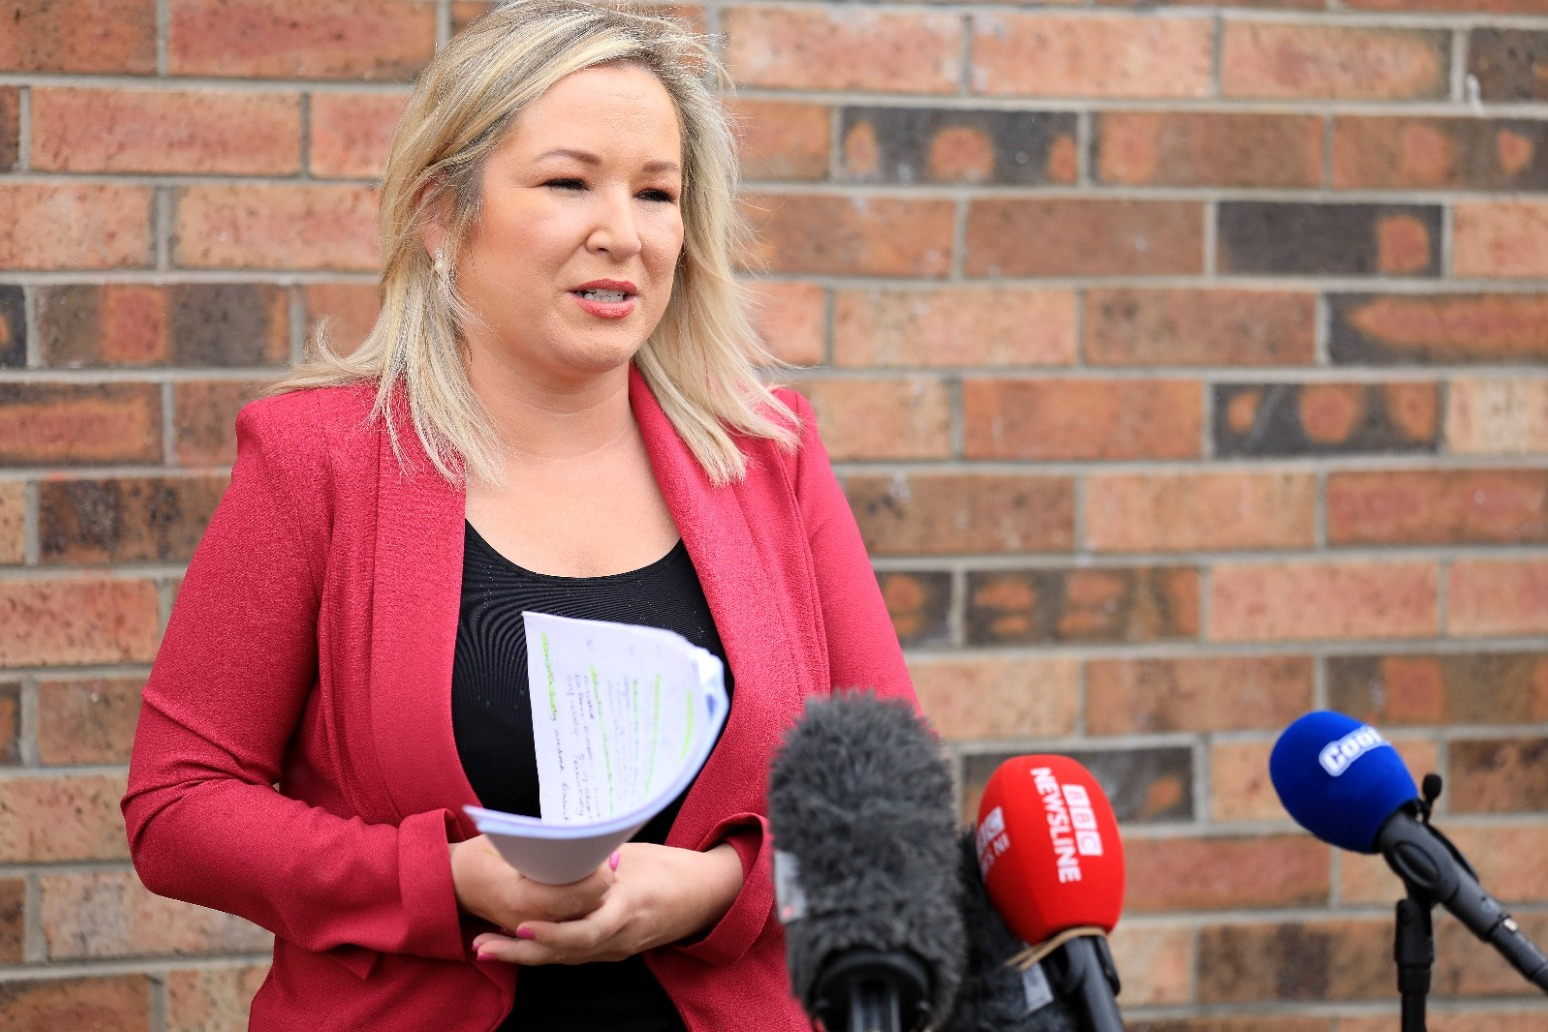 Changes to self-isolation rules agreed for Northern Ireland